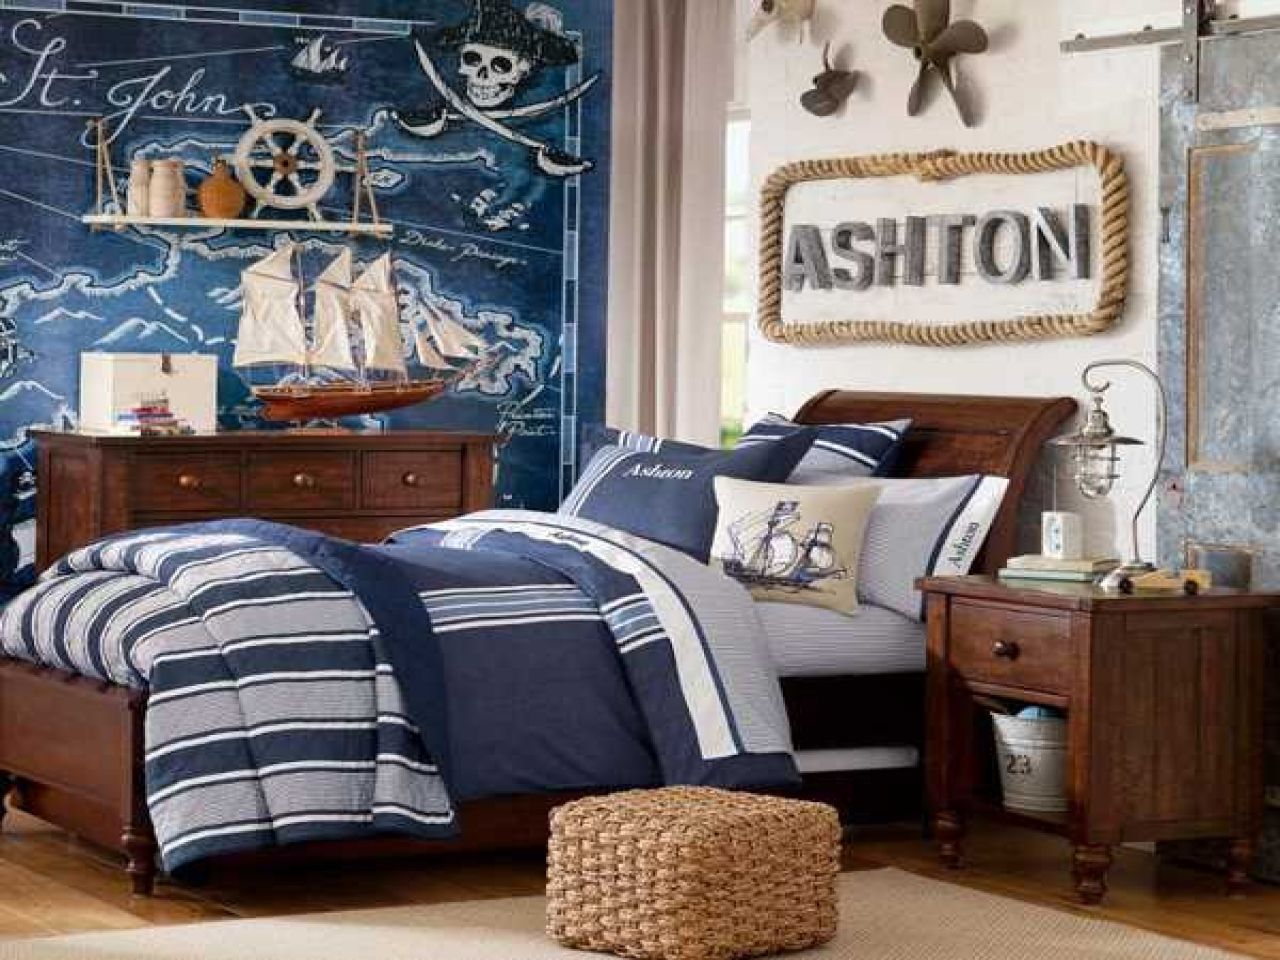 barn-boy-furniture-pottery-barn-boys-room-ideas-excellent-kids ...